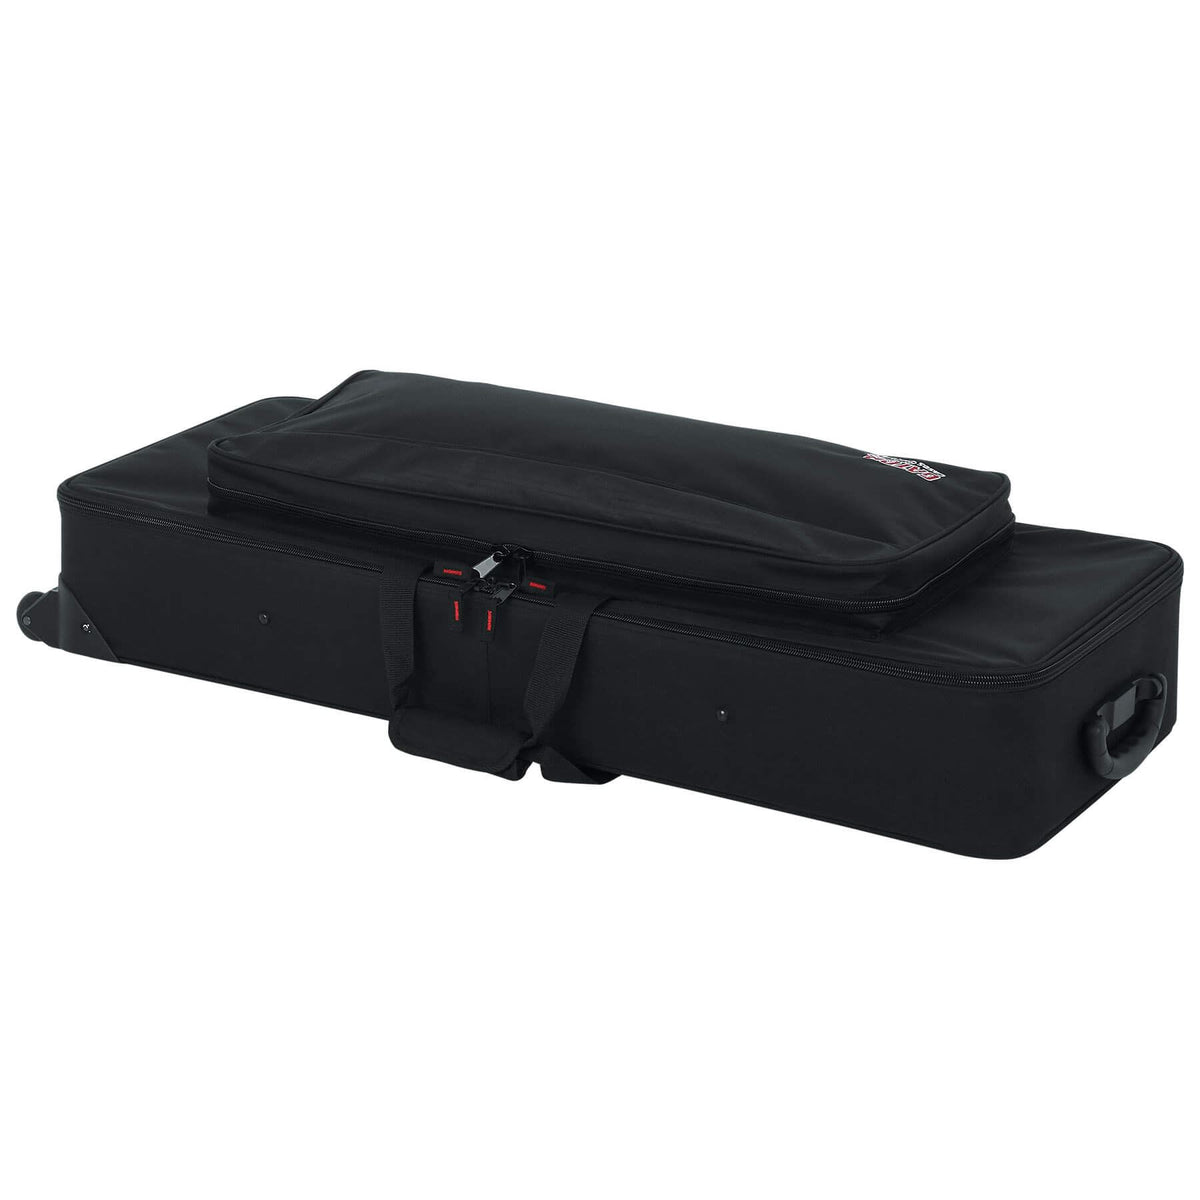 Gator Keyboard Case for Yamaha KX49, KX61, MM6, MX49